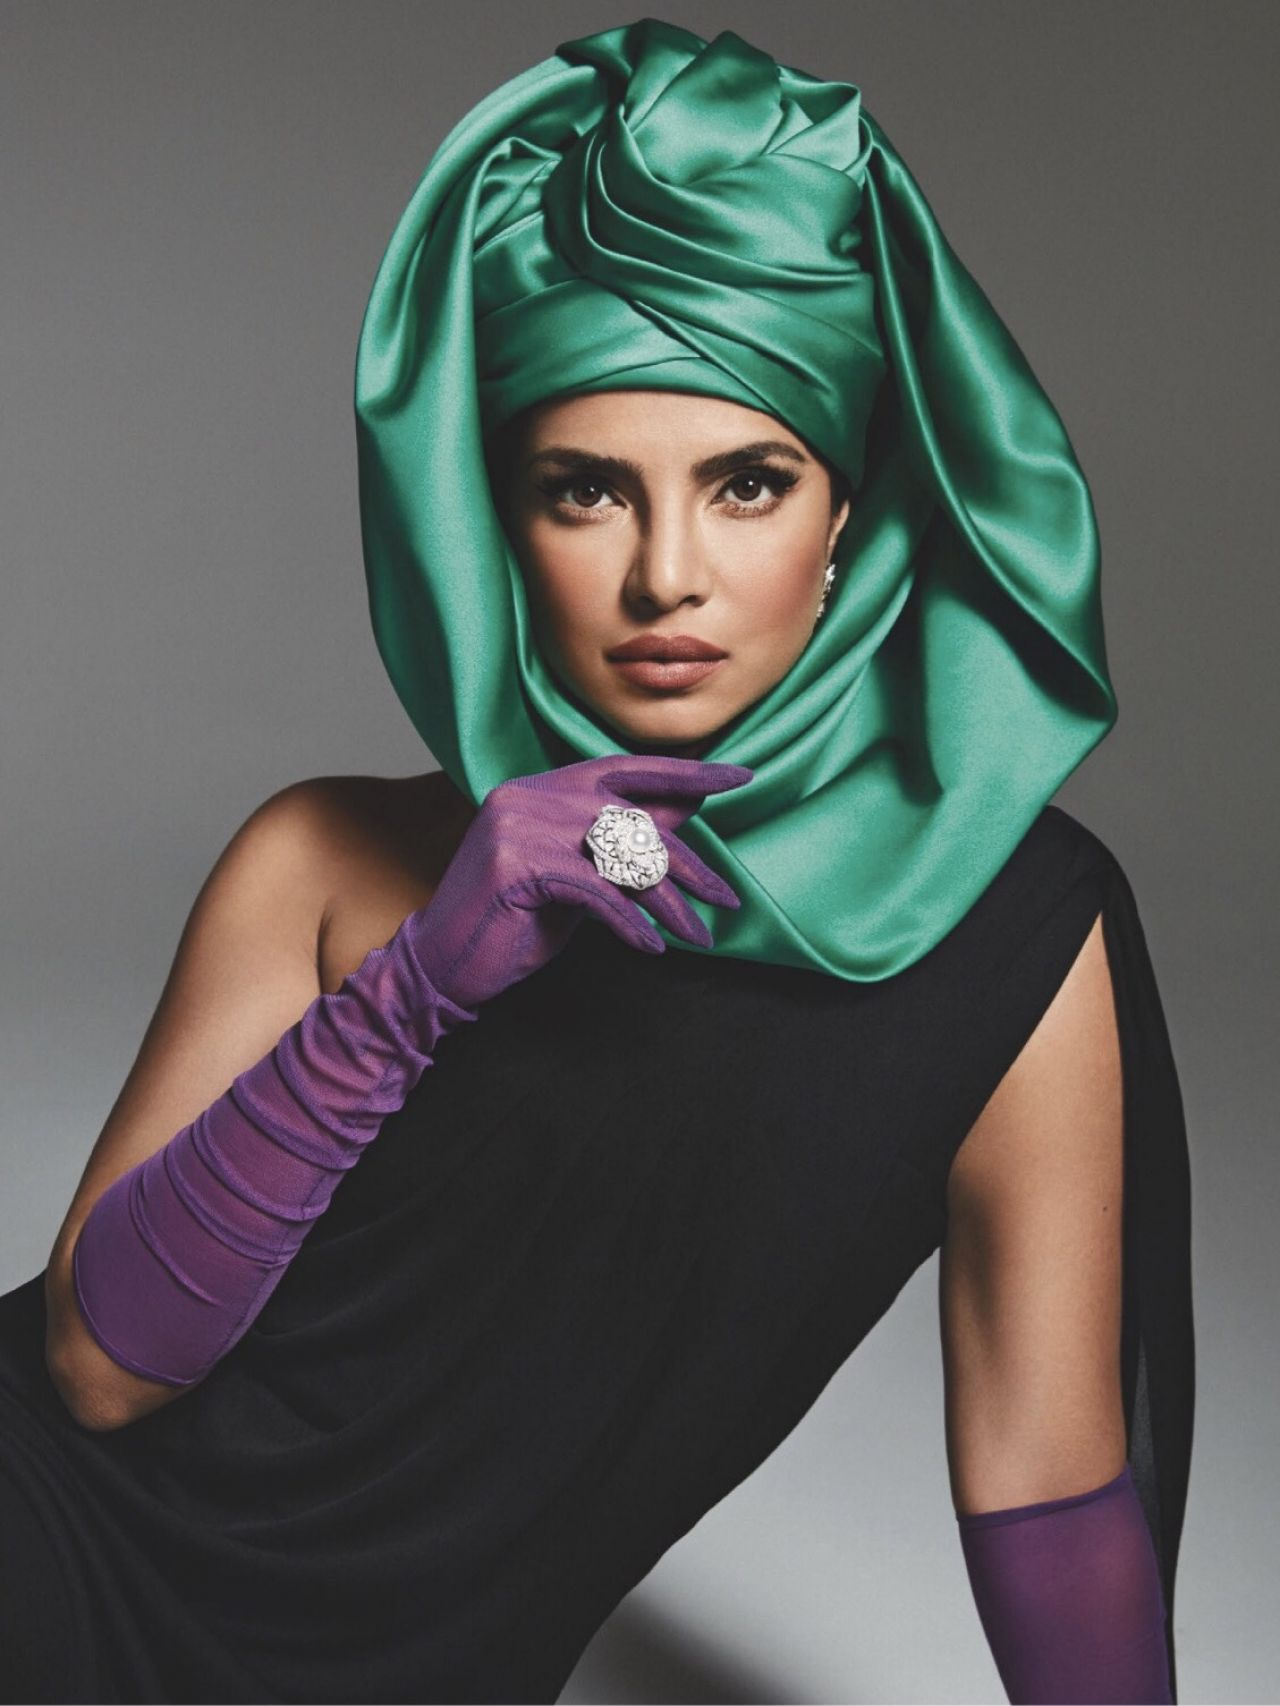 priyanka-chopra-covers-tatler-magazine-uk-photoshoot-may-2020